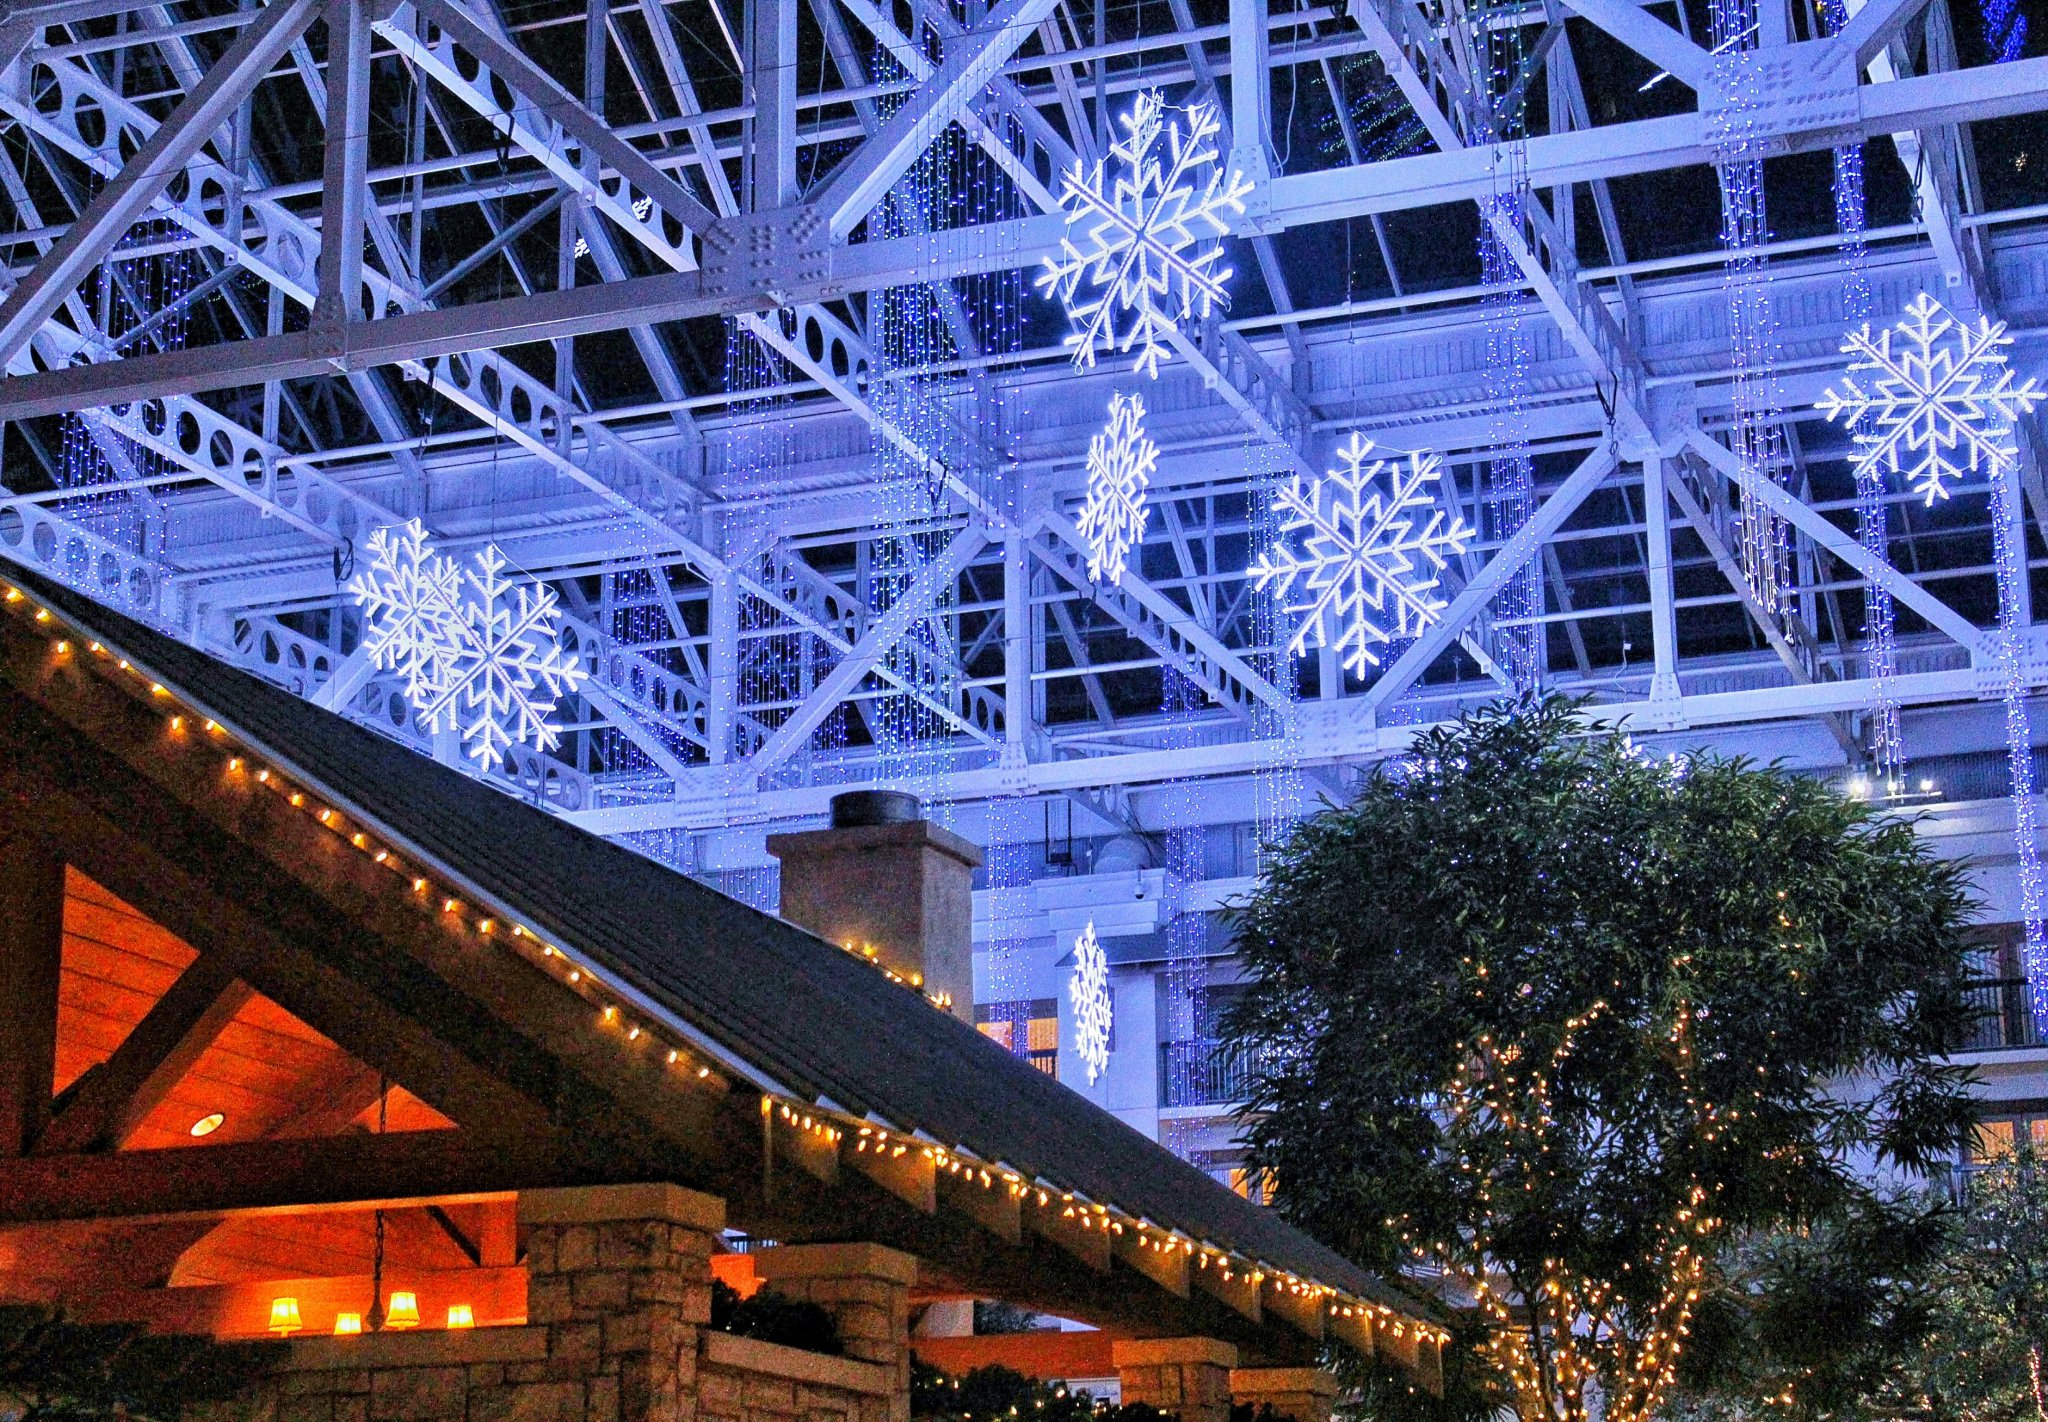 Winter Wonderland at the Gaylord Texan Resort Hotel & Conference Center